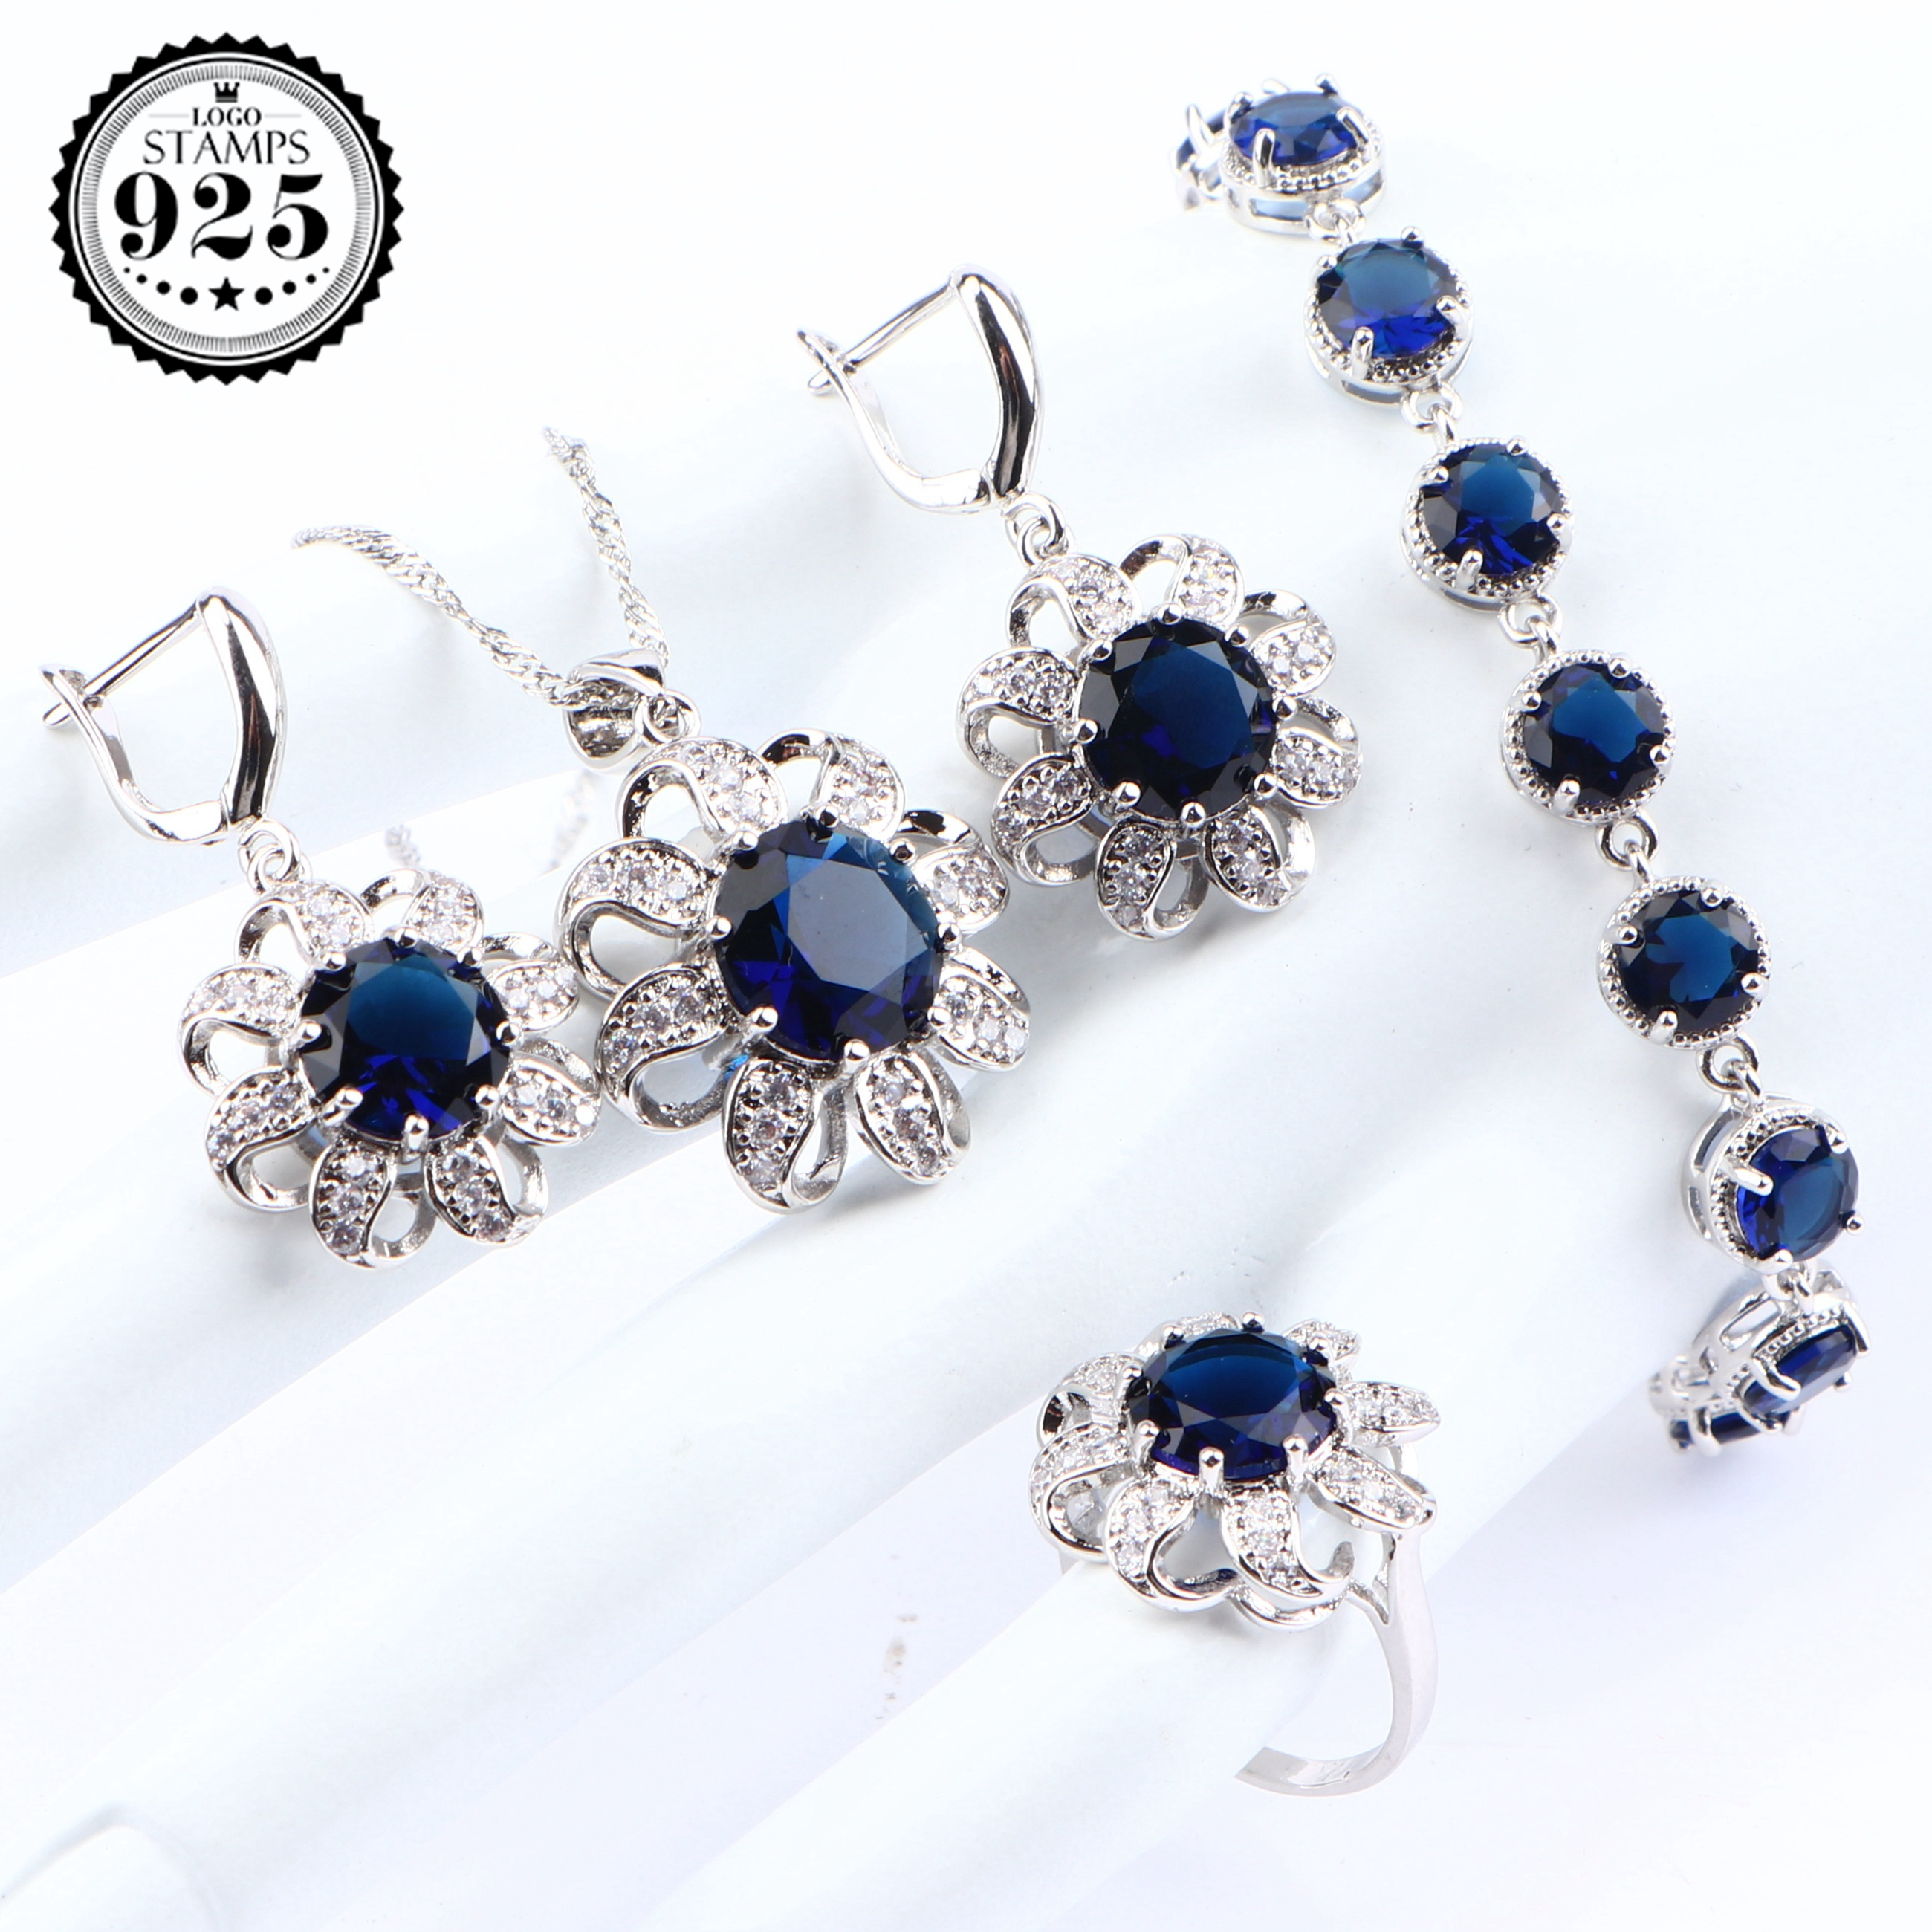 Silver 925 Wedding Bridal Jewelry Sets For Women Costume Zirconia Jewelry Pendant Bracelet Ring Earrings Necklace Sets Gift Box